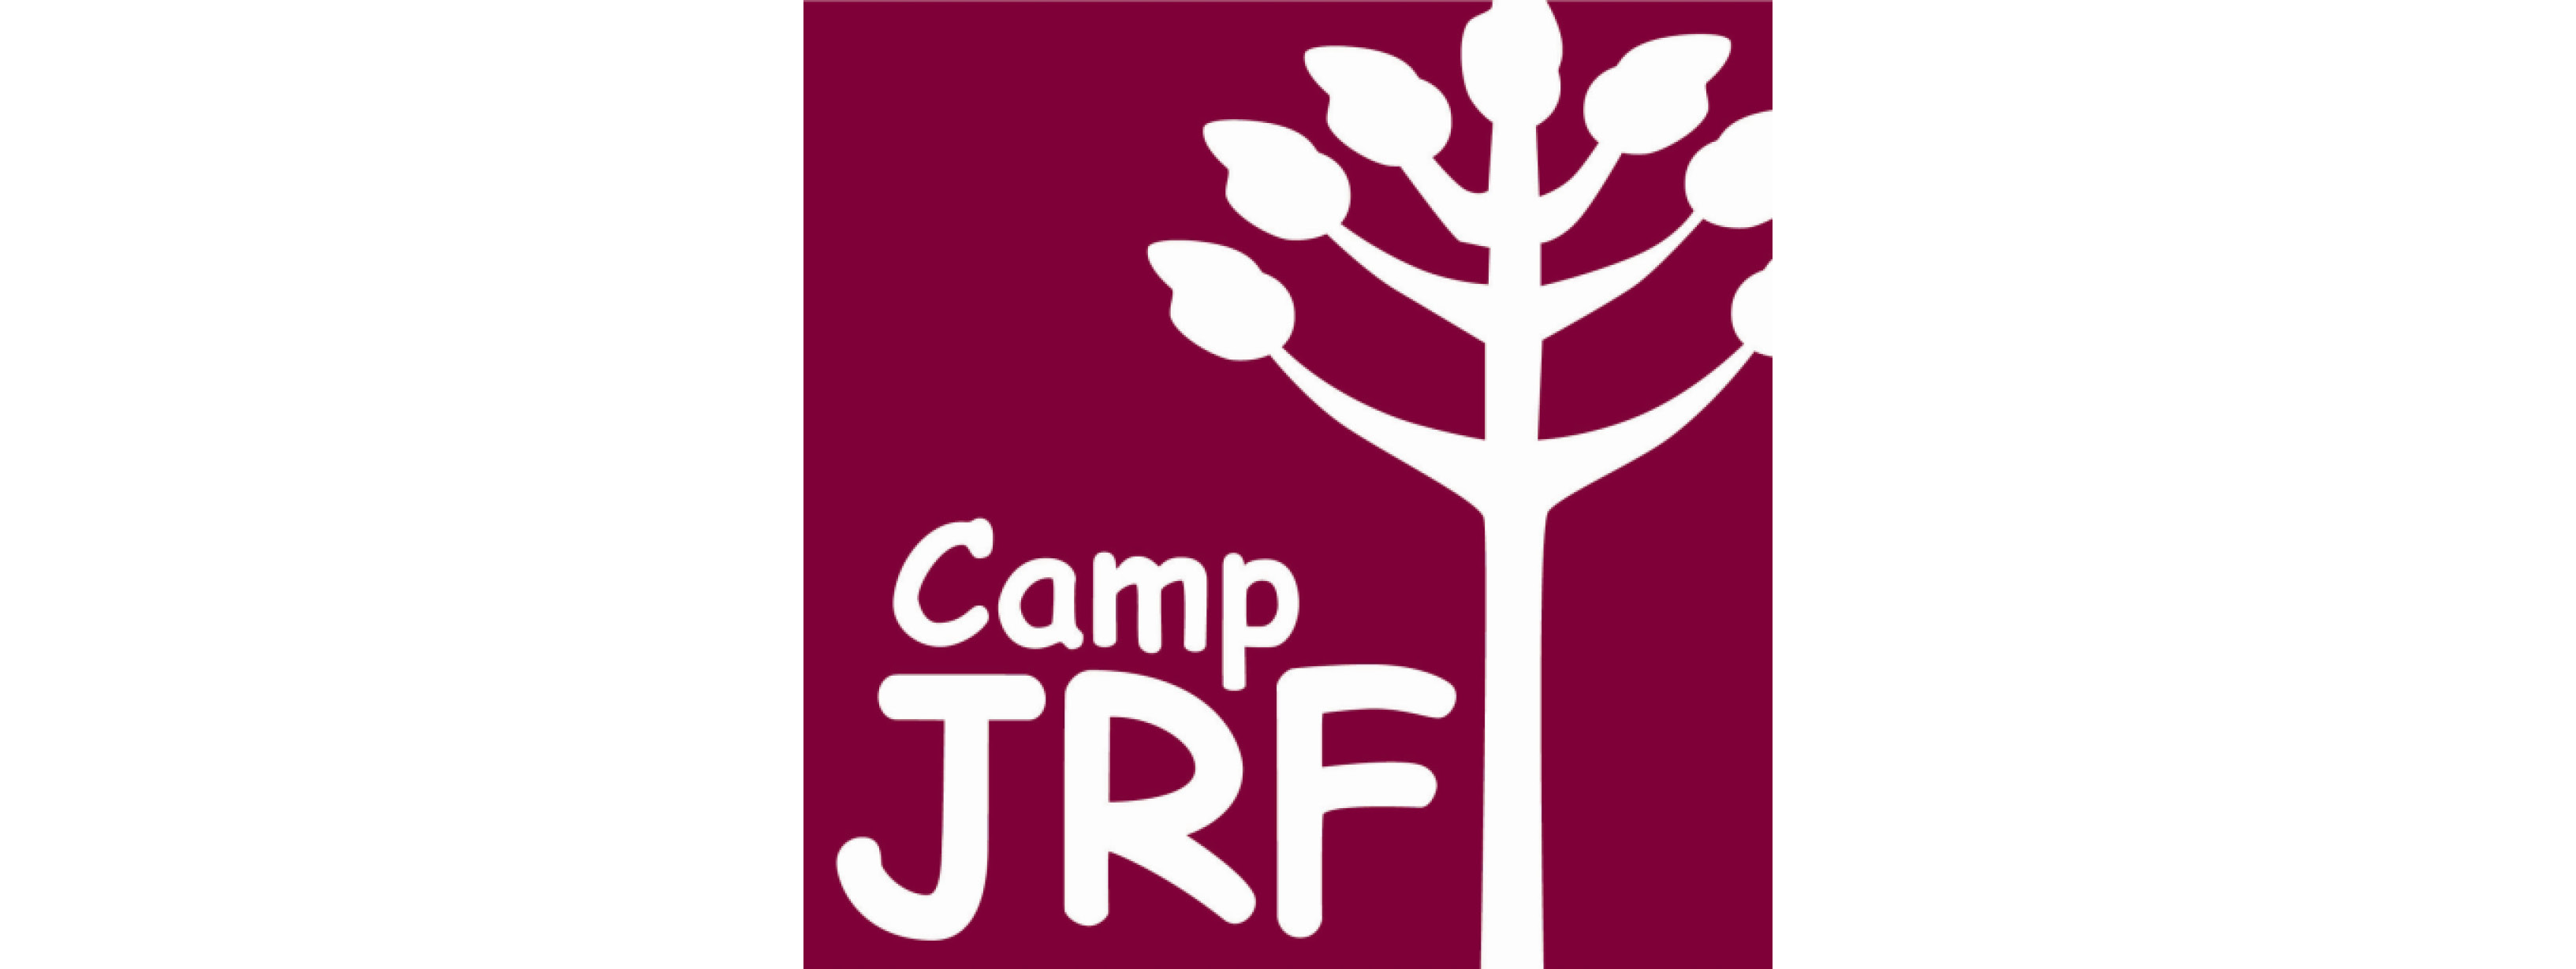 CAMP JRF